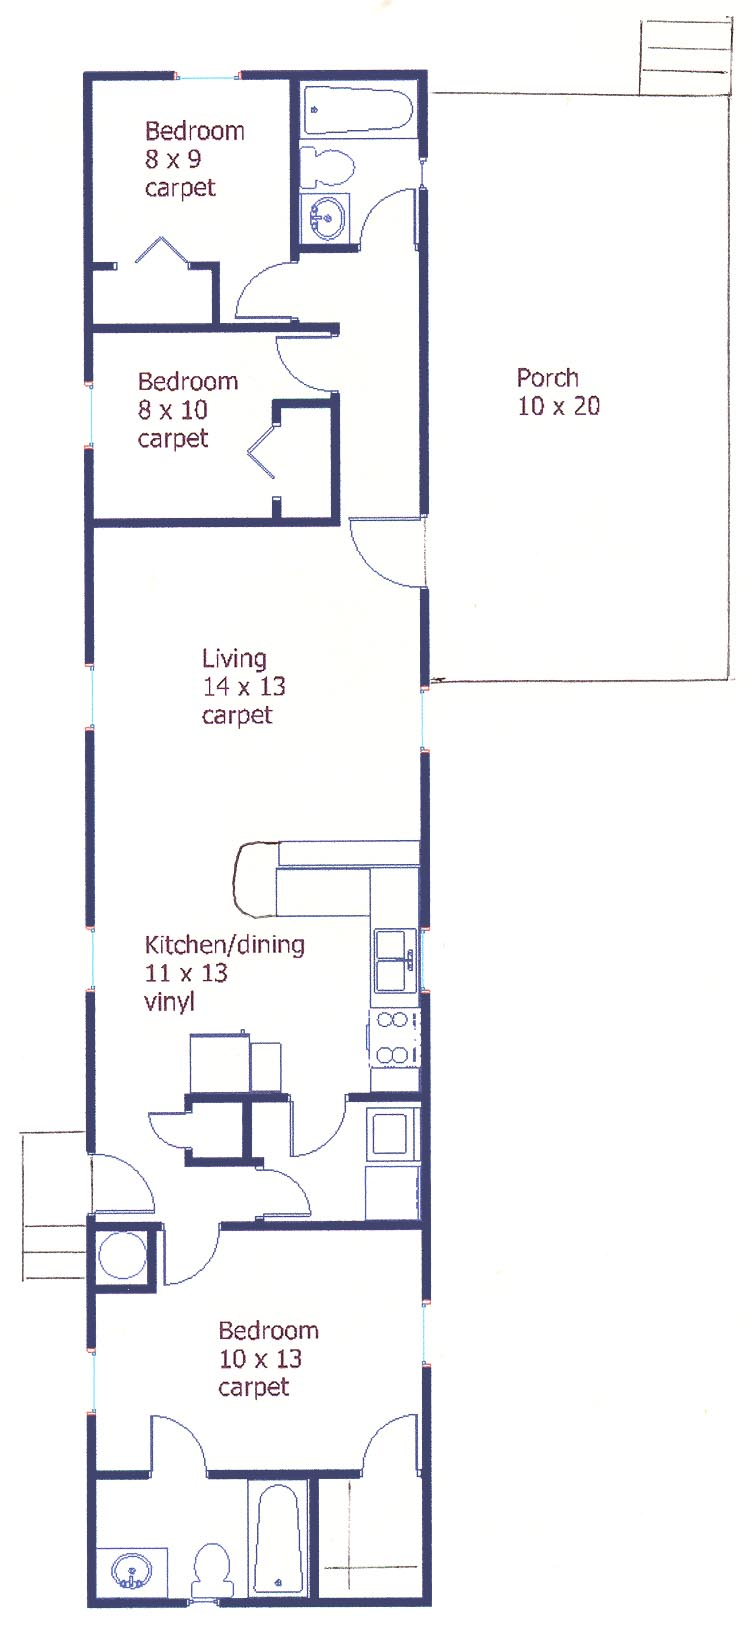 Floor plan of the 3 bedroom house for rent at 123 Driftwood Drive, State College